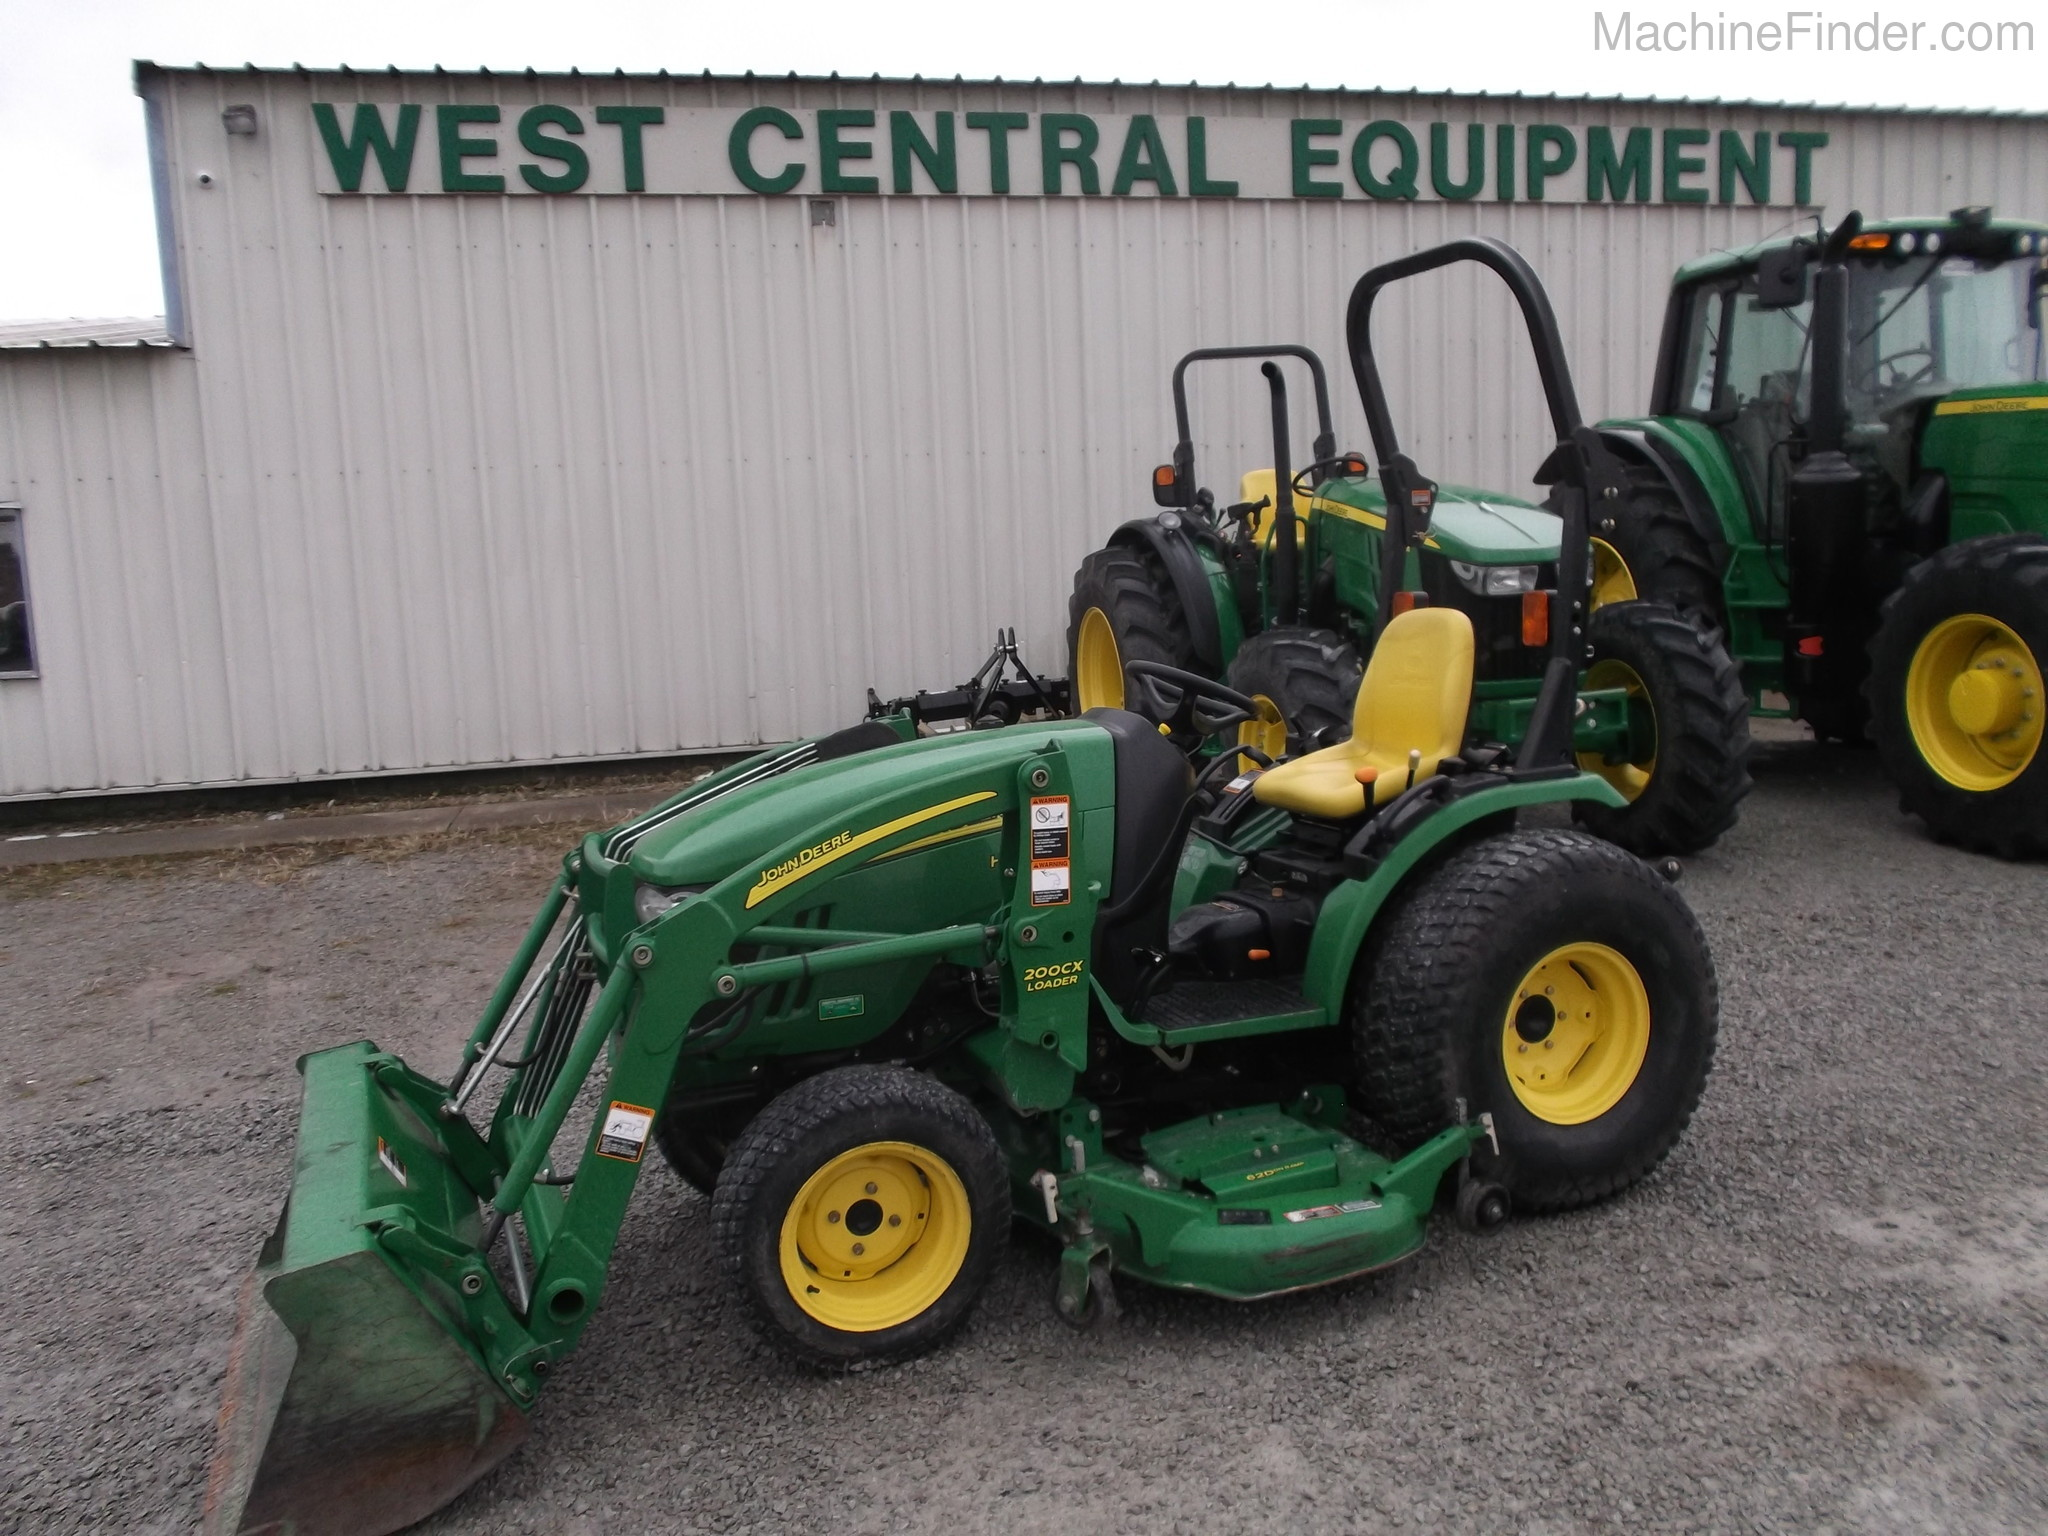 John Deere 2520 Compact Tractor Best Deer Photos Jd Wiring Diagram Pact Water Alliance